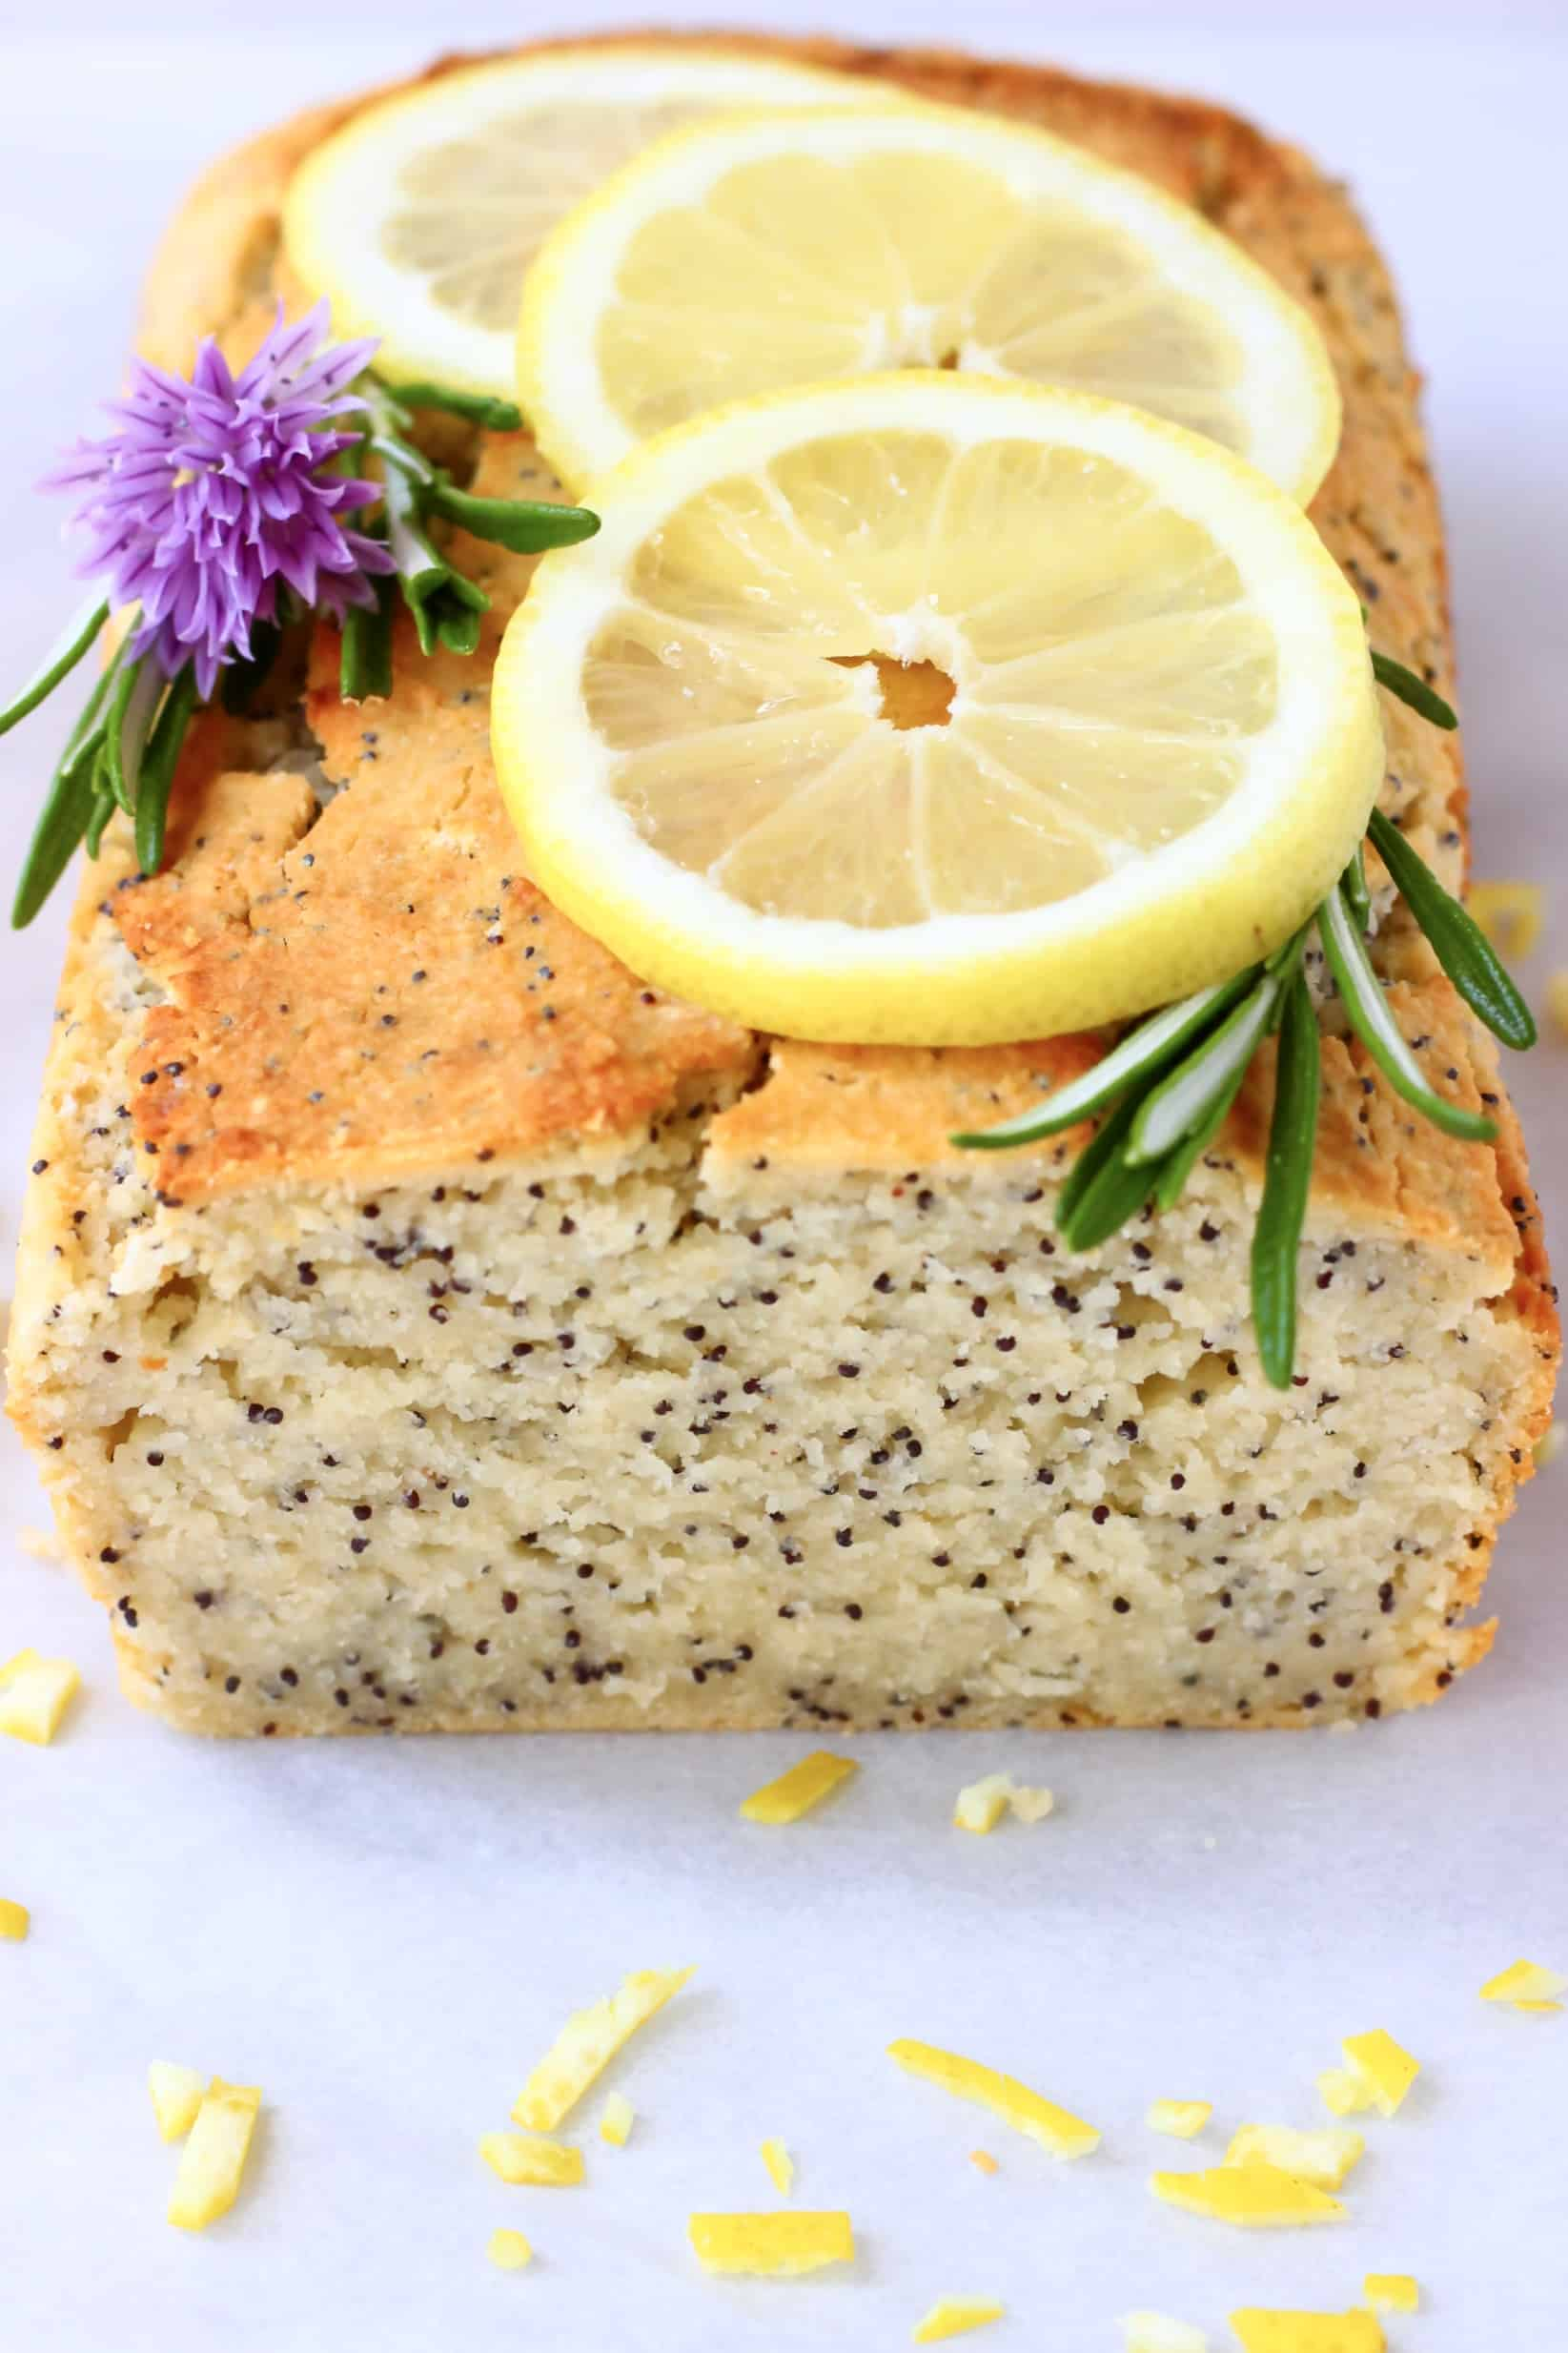 A loaf of gluten-free vegan lemon poppy seed bread topped with lemon slices